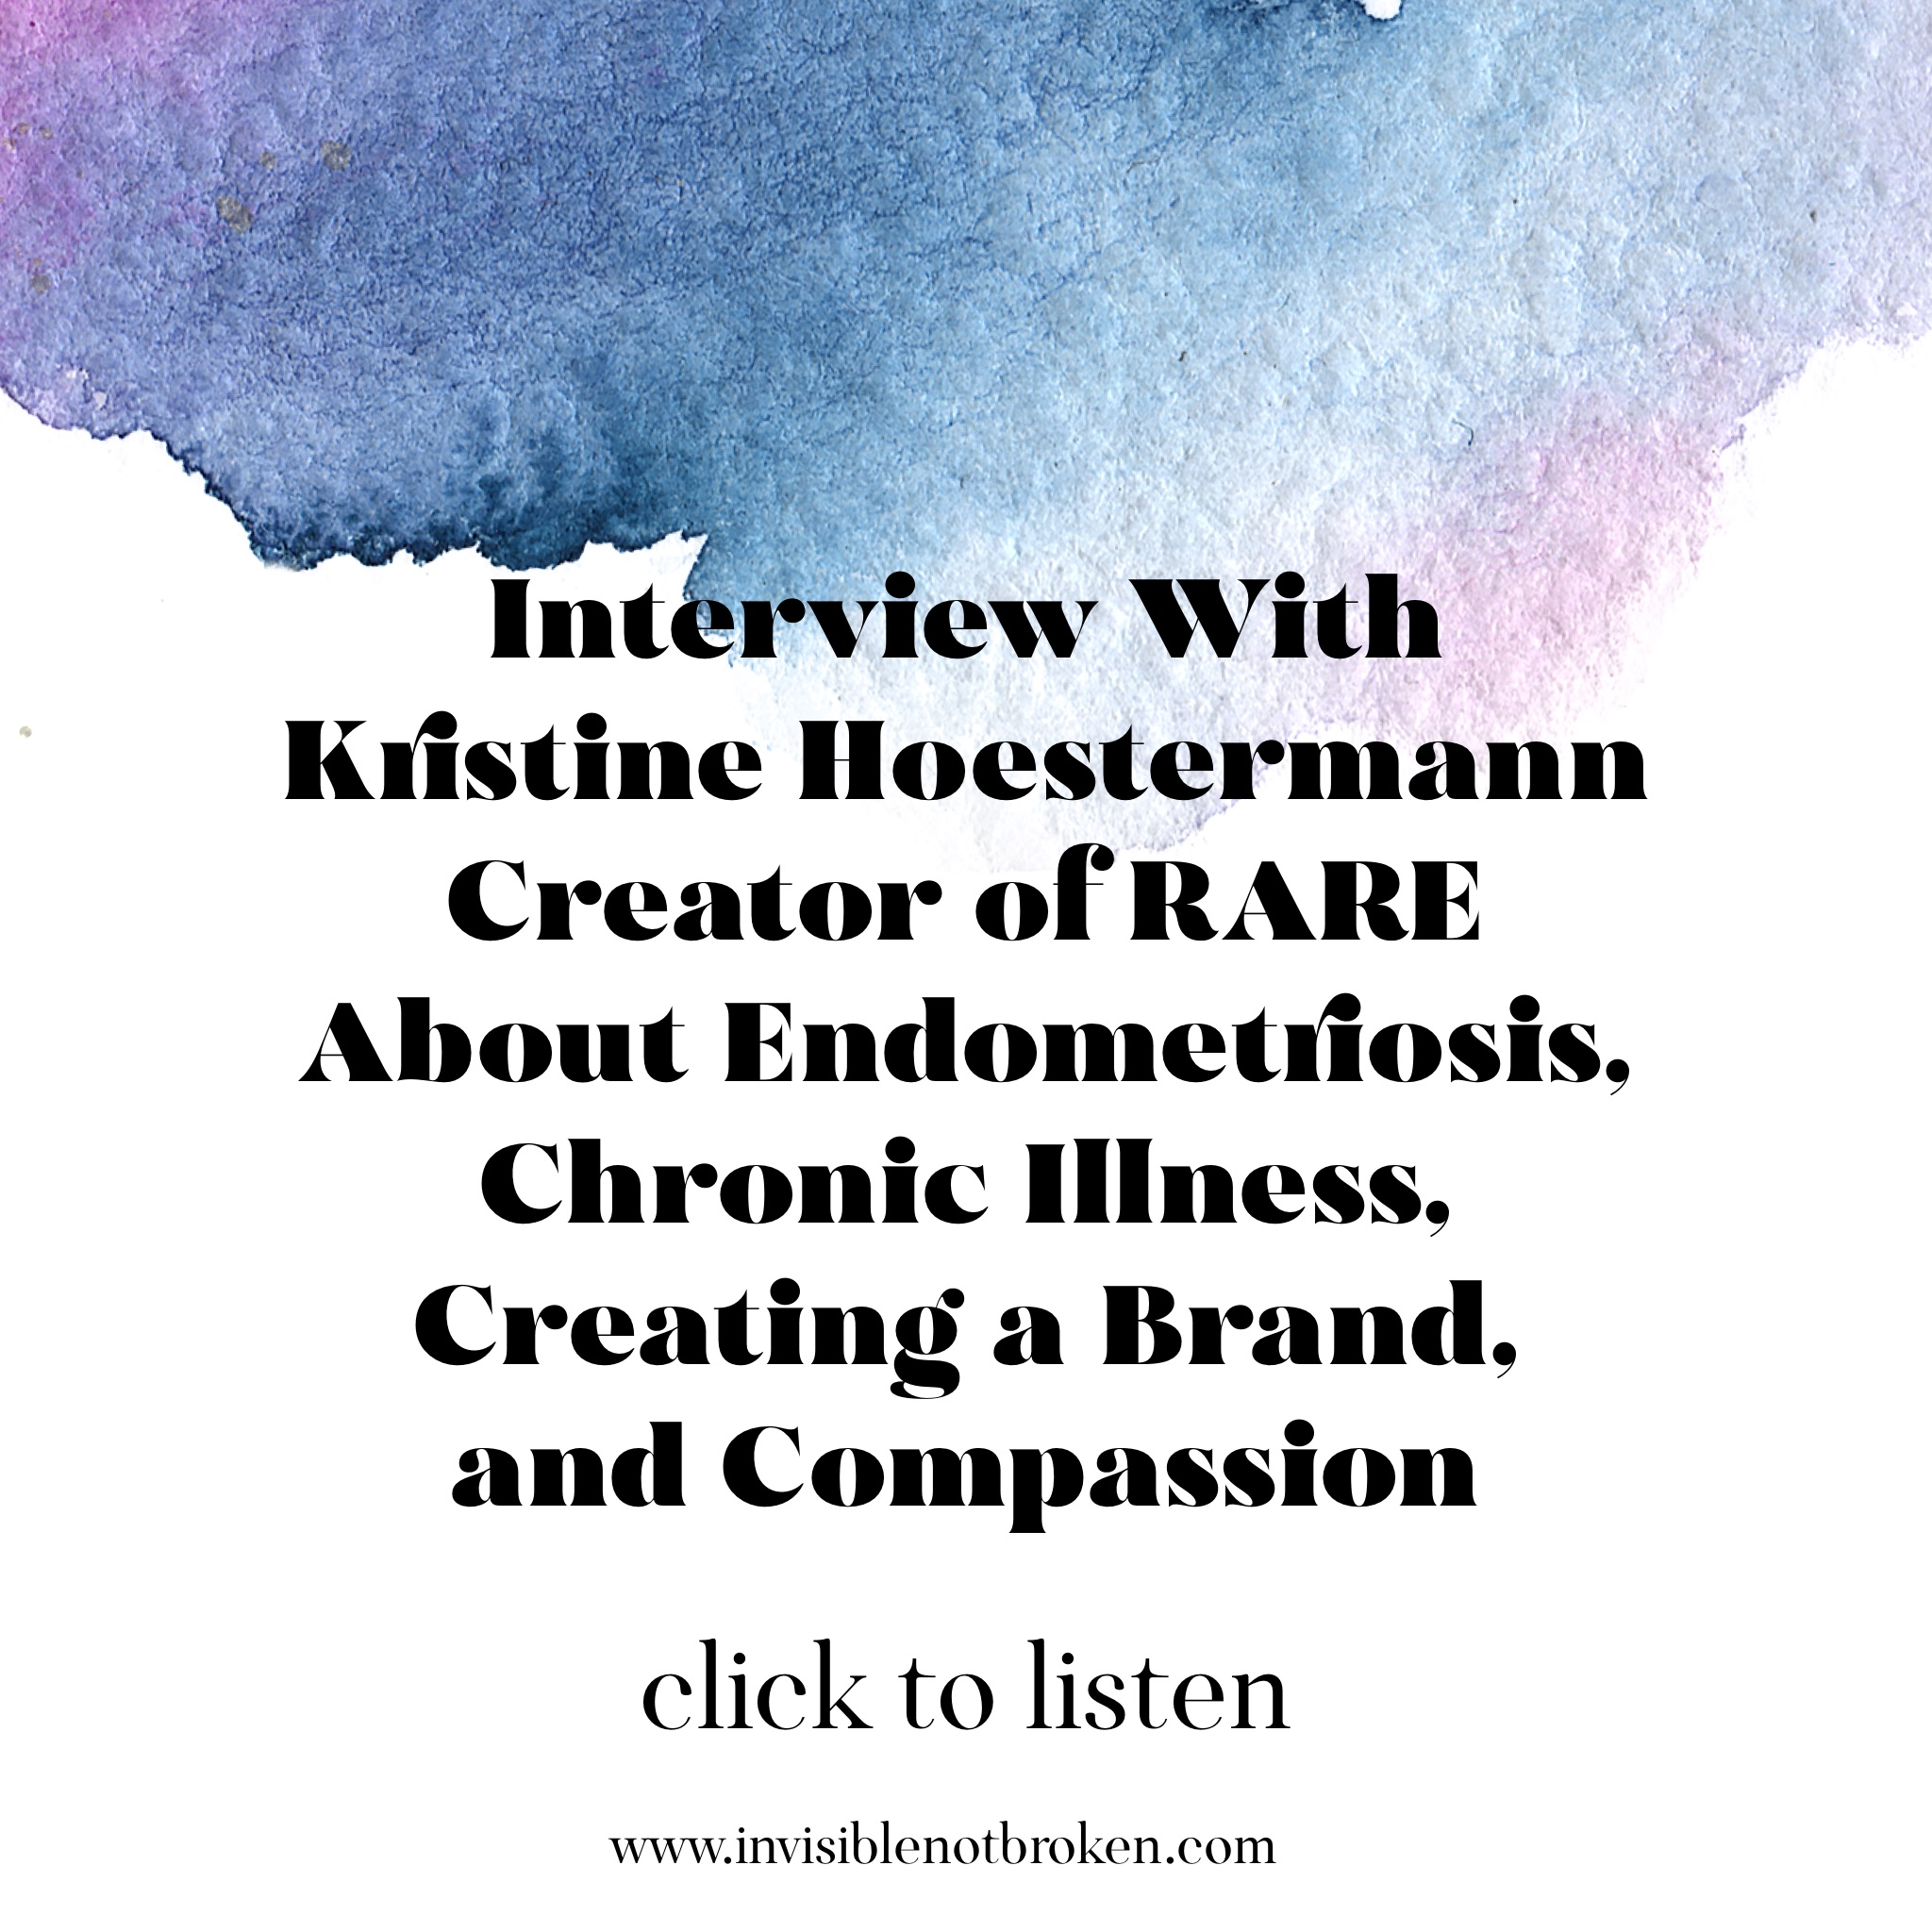 Interview With Kristine Hoestermann Creator of RARE About Endometriosis, Chronic Illness, Creating a Brand, and Compassion